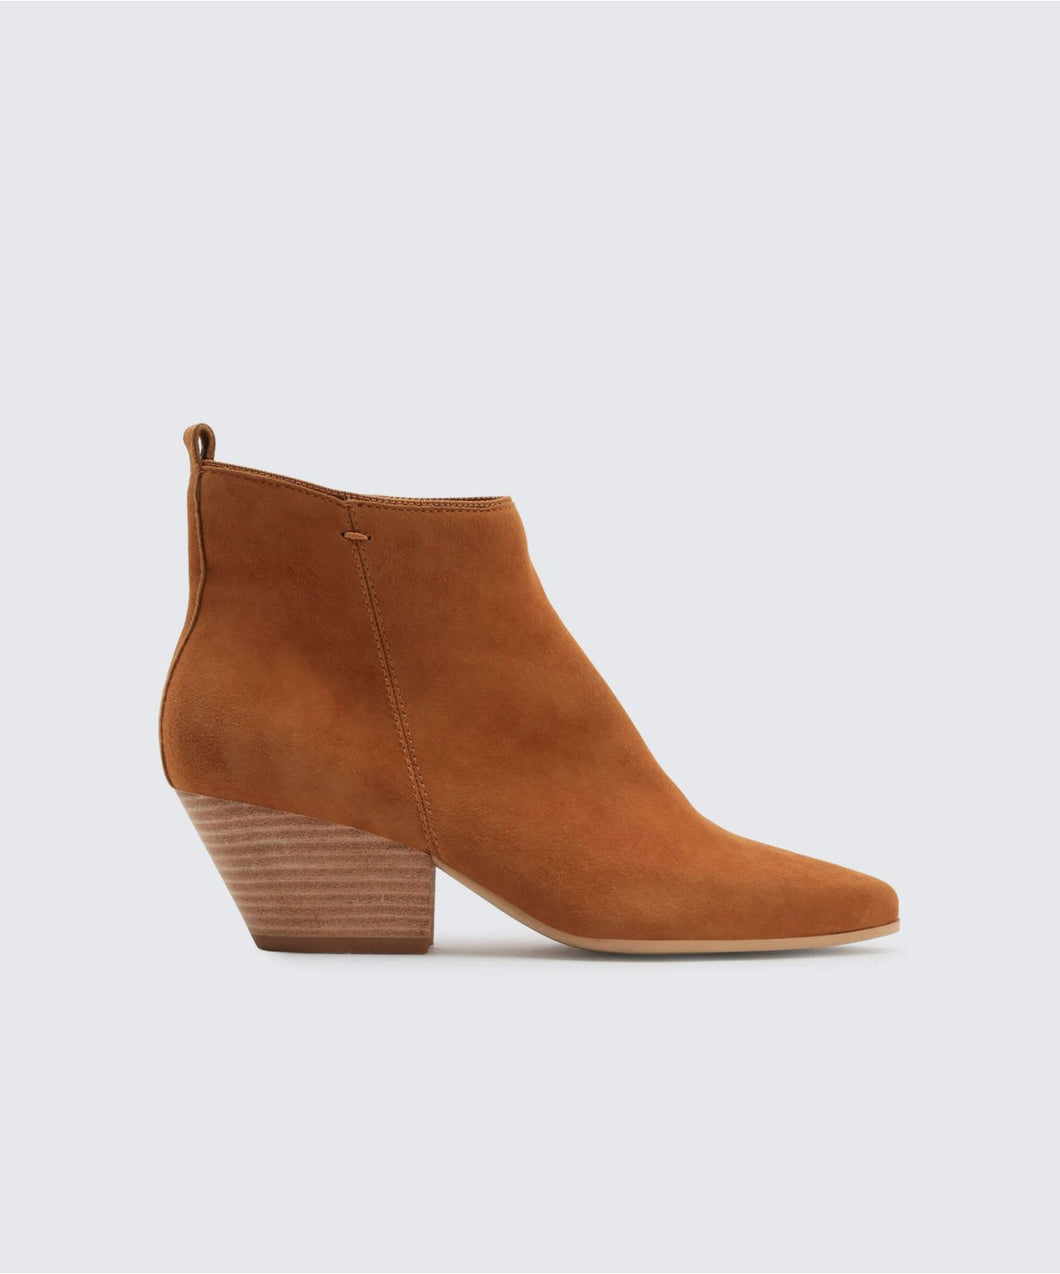 PEARSE BOOTIES IN DK SADDLE -   Dolce Vita